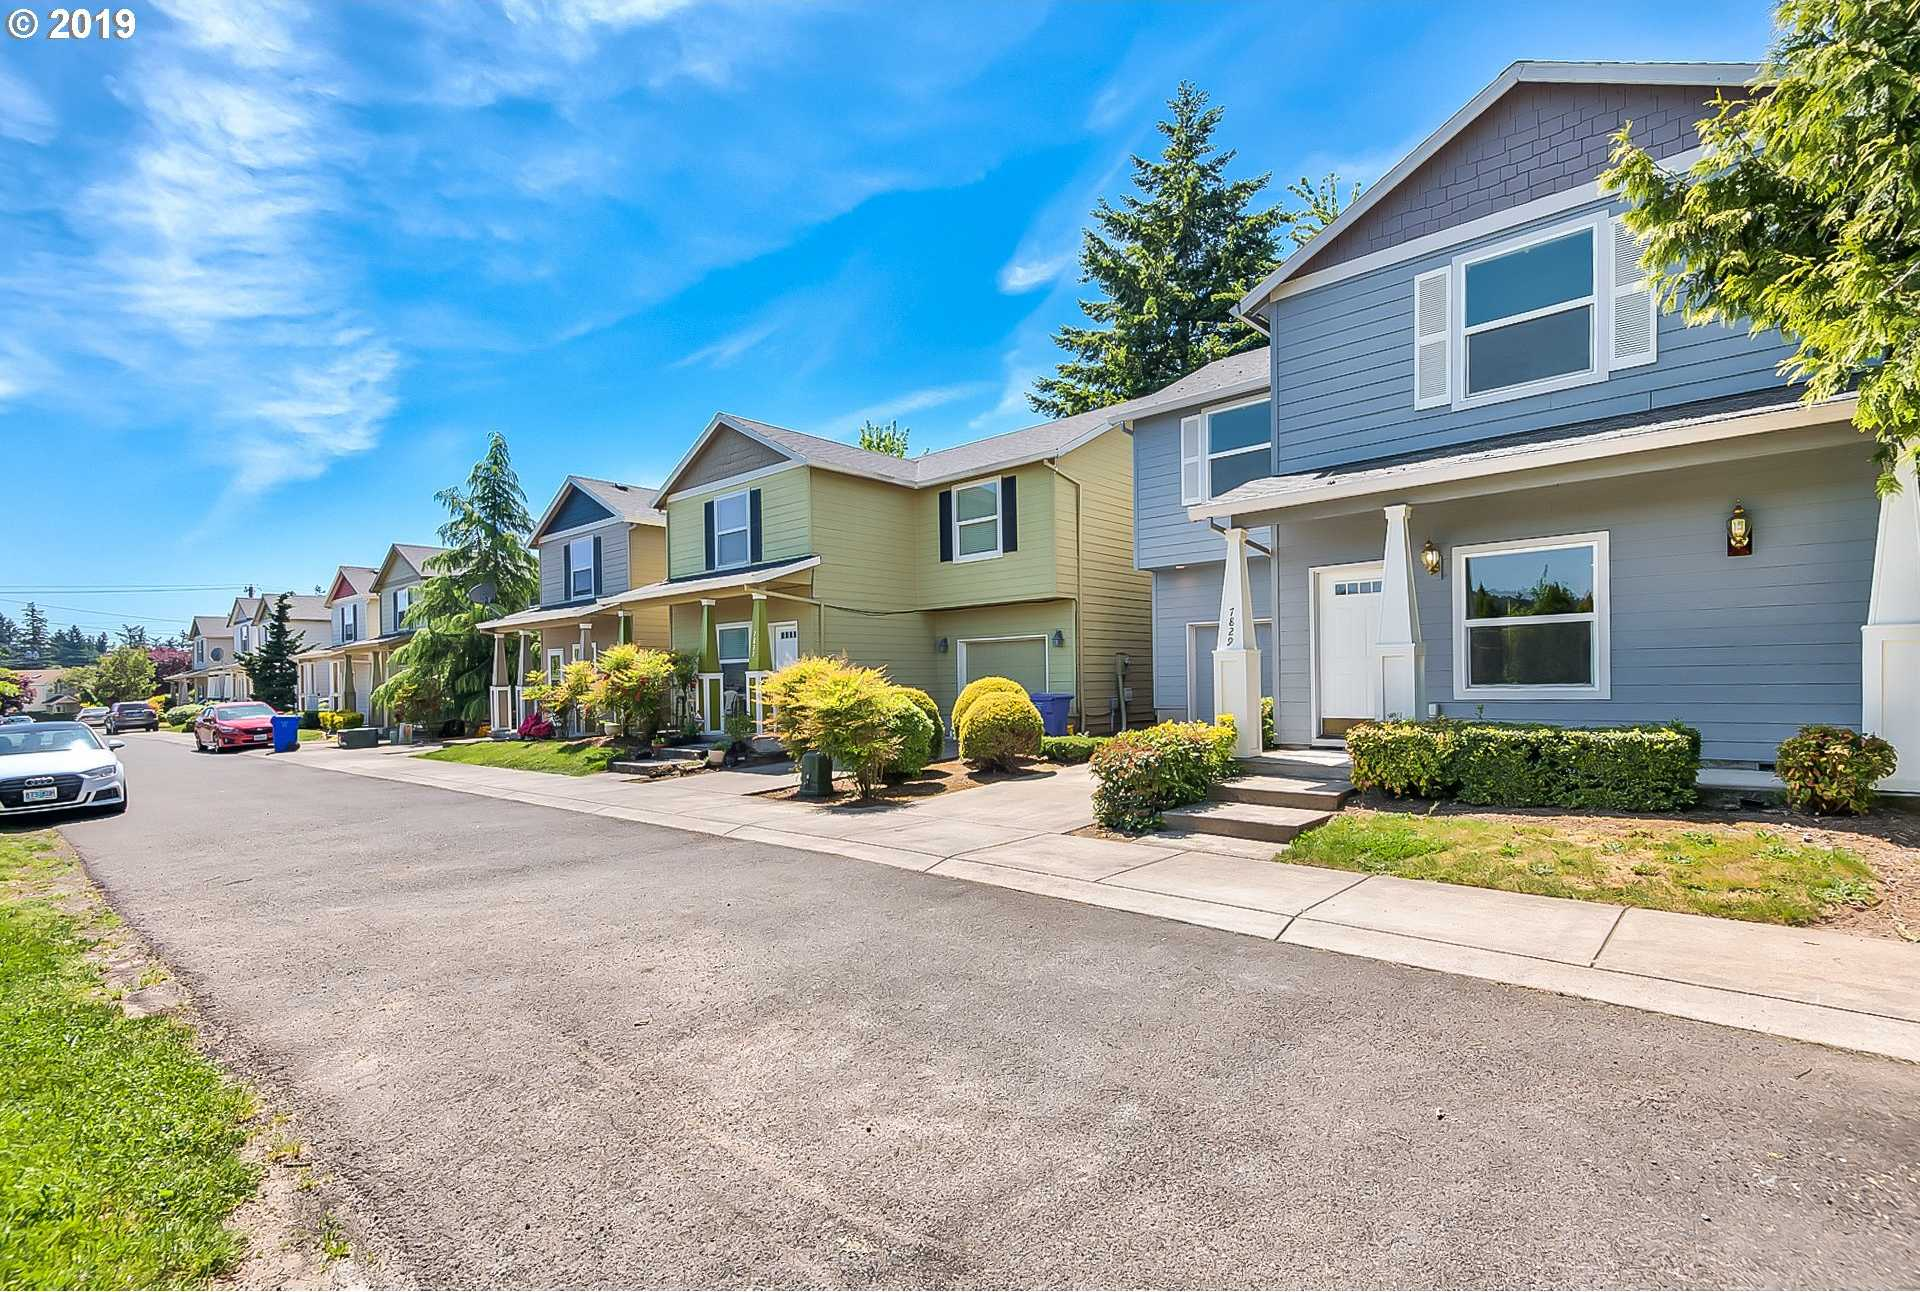 $279,900 - 3Br/3Ba -  for Sale in Portland